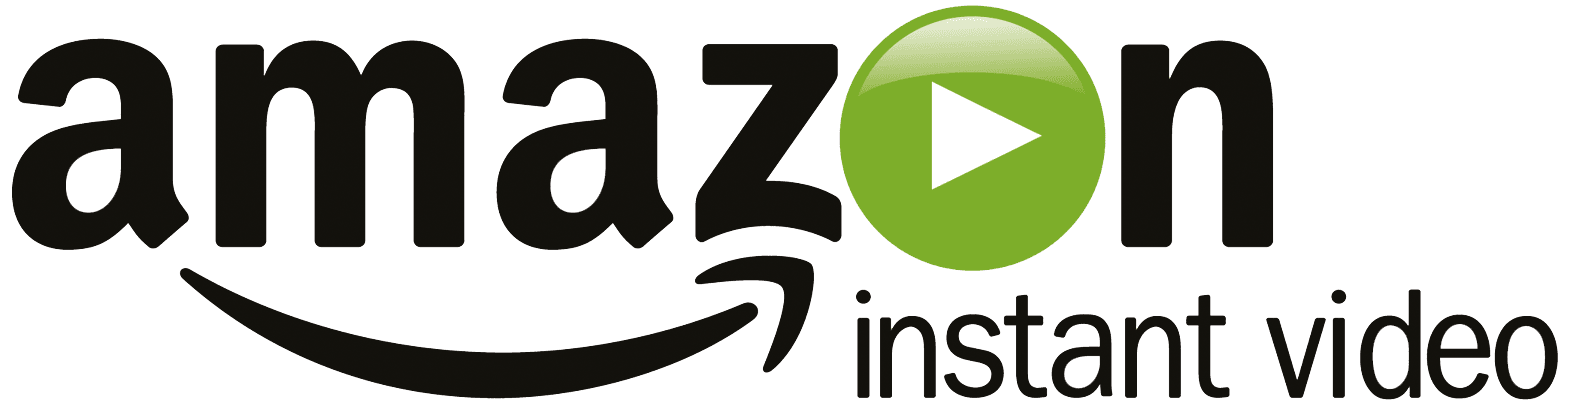 Come condividere Amazon Prime Video e cosa si rischia